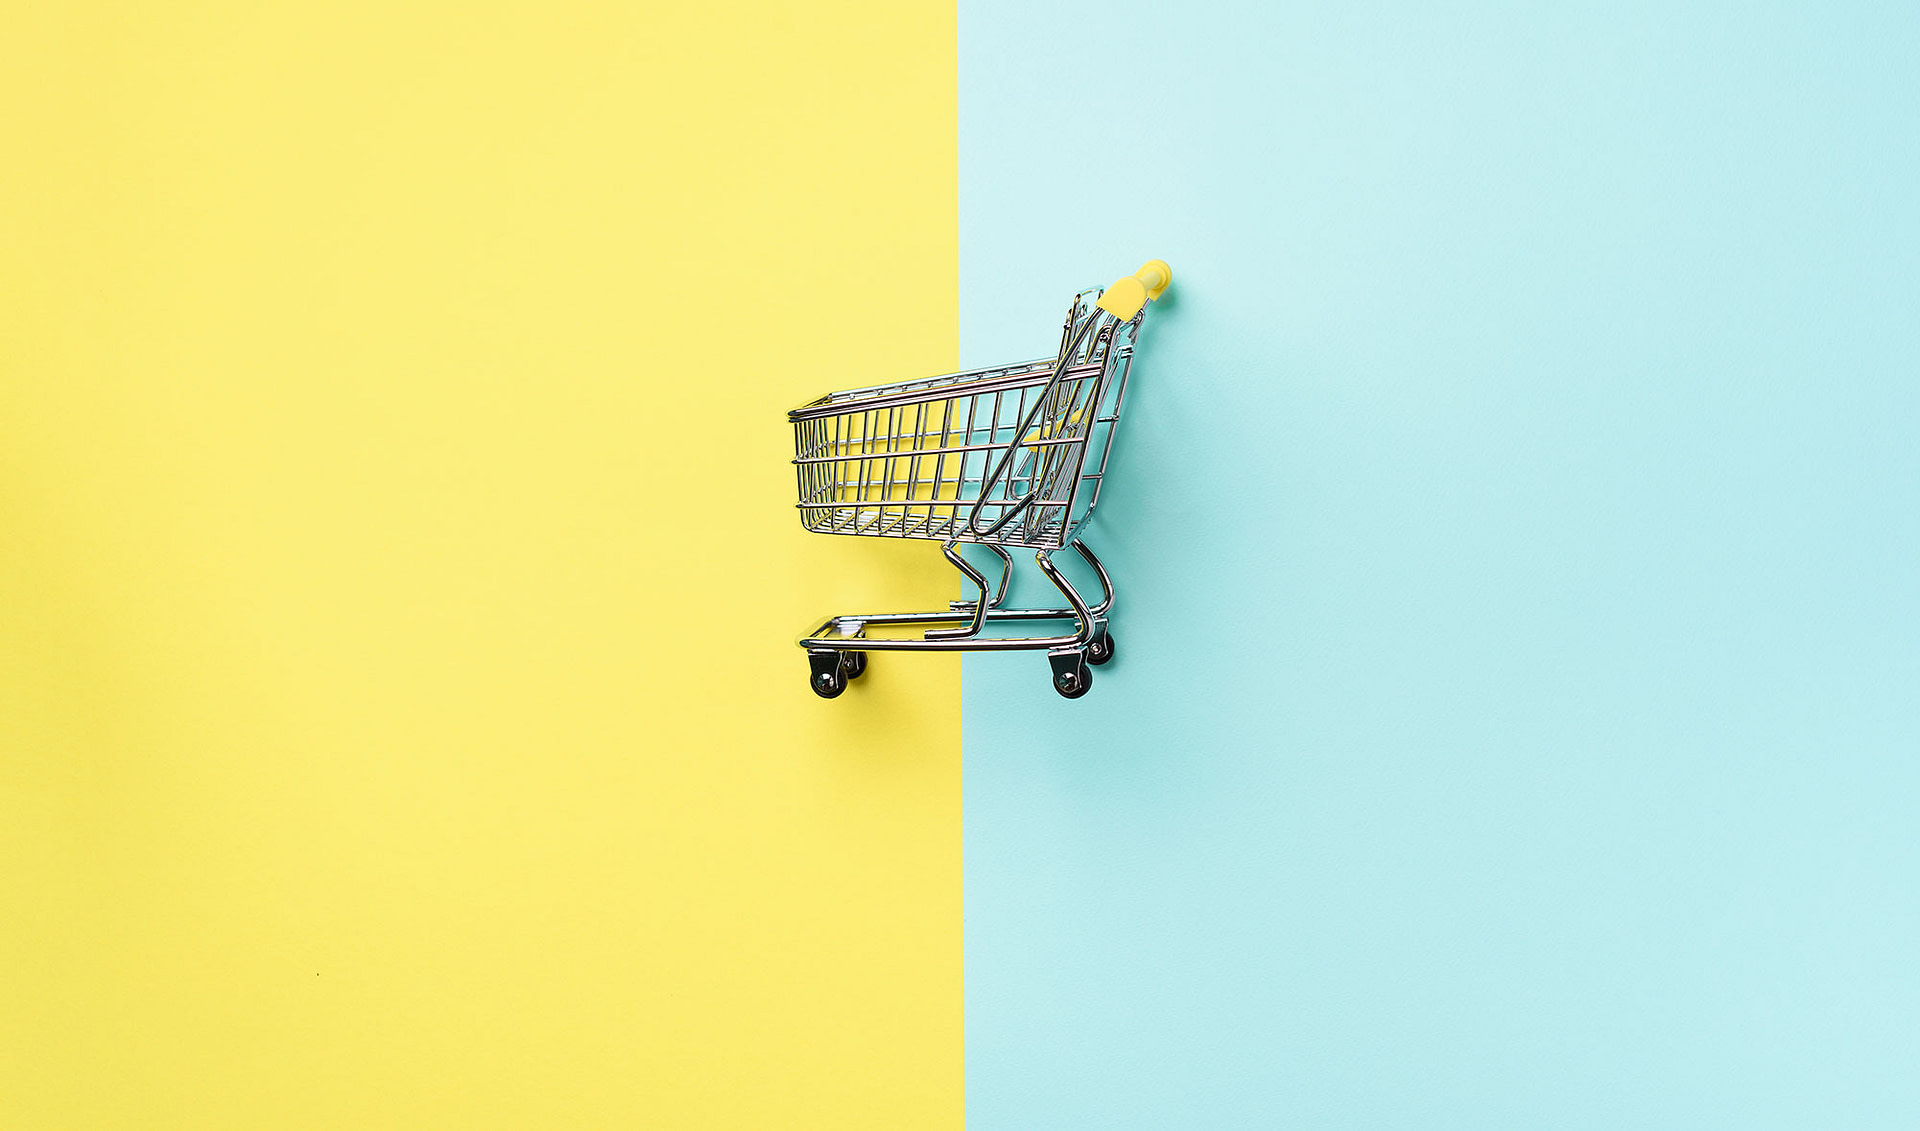 shopping-cart-on-blue-and-yellow-background-minima-ARBKQCB